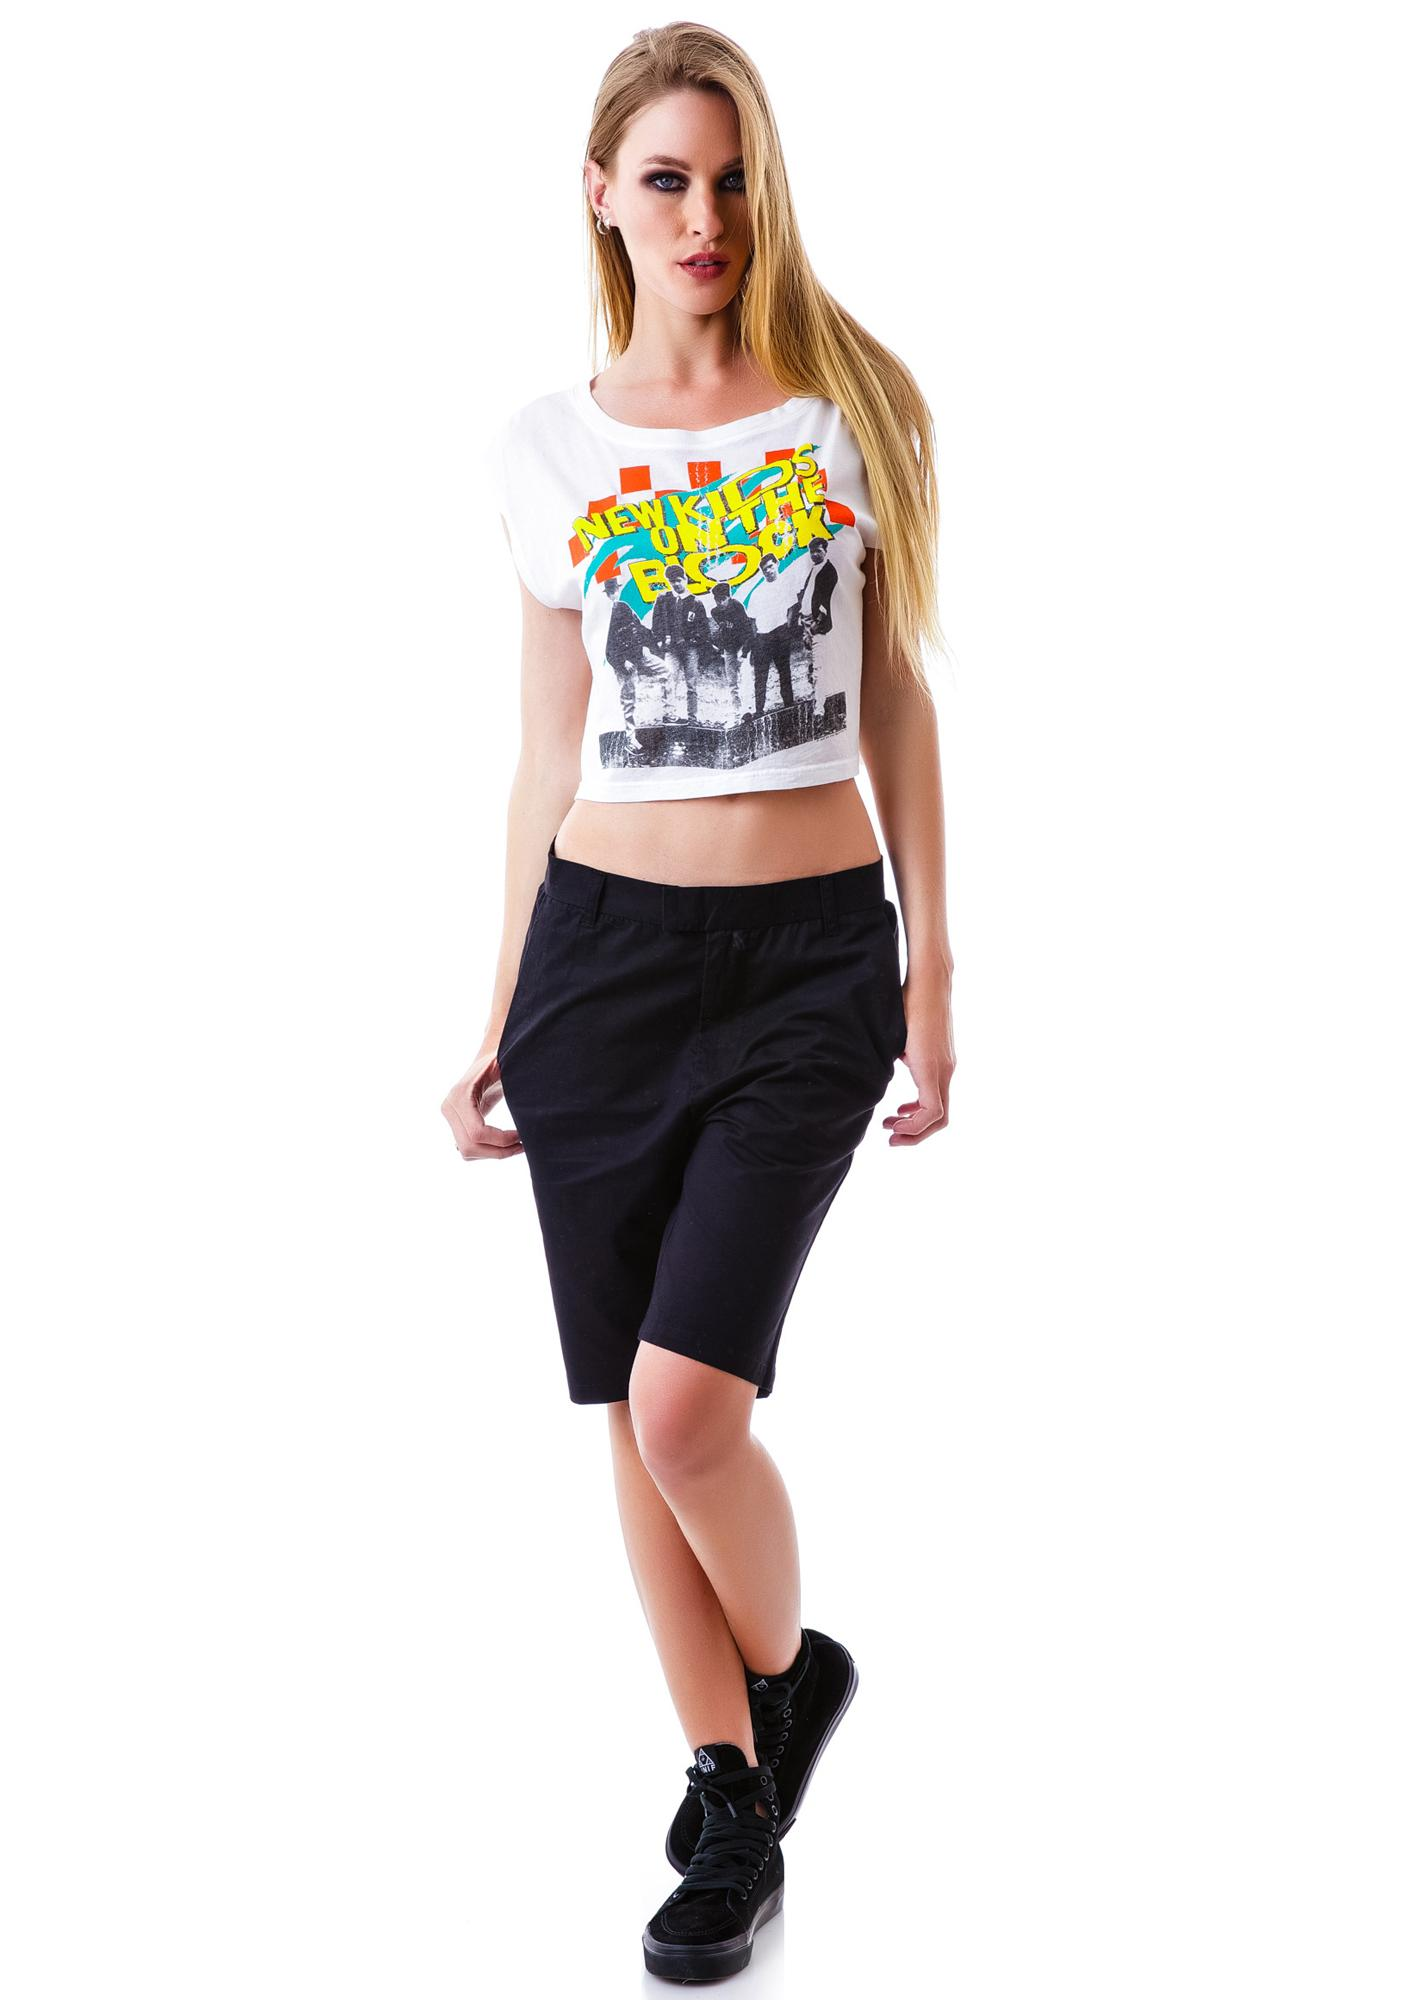 NKOTB Crop Top